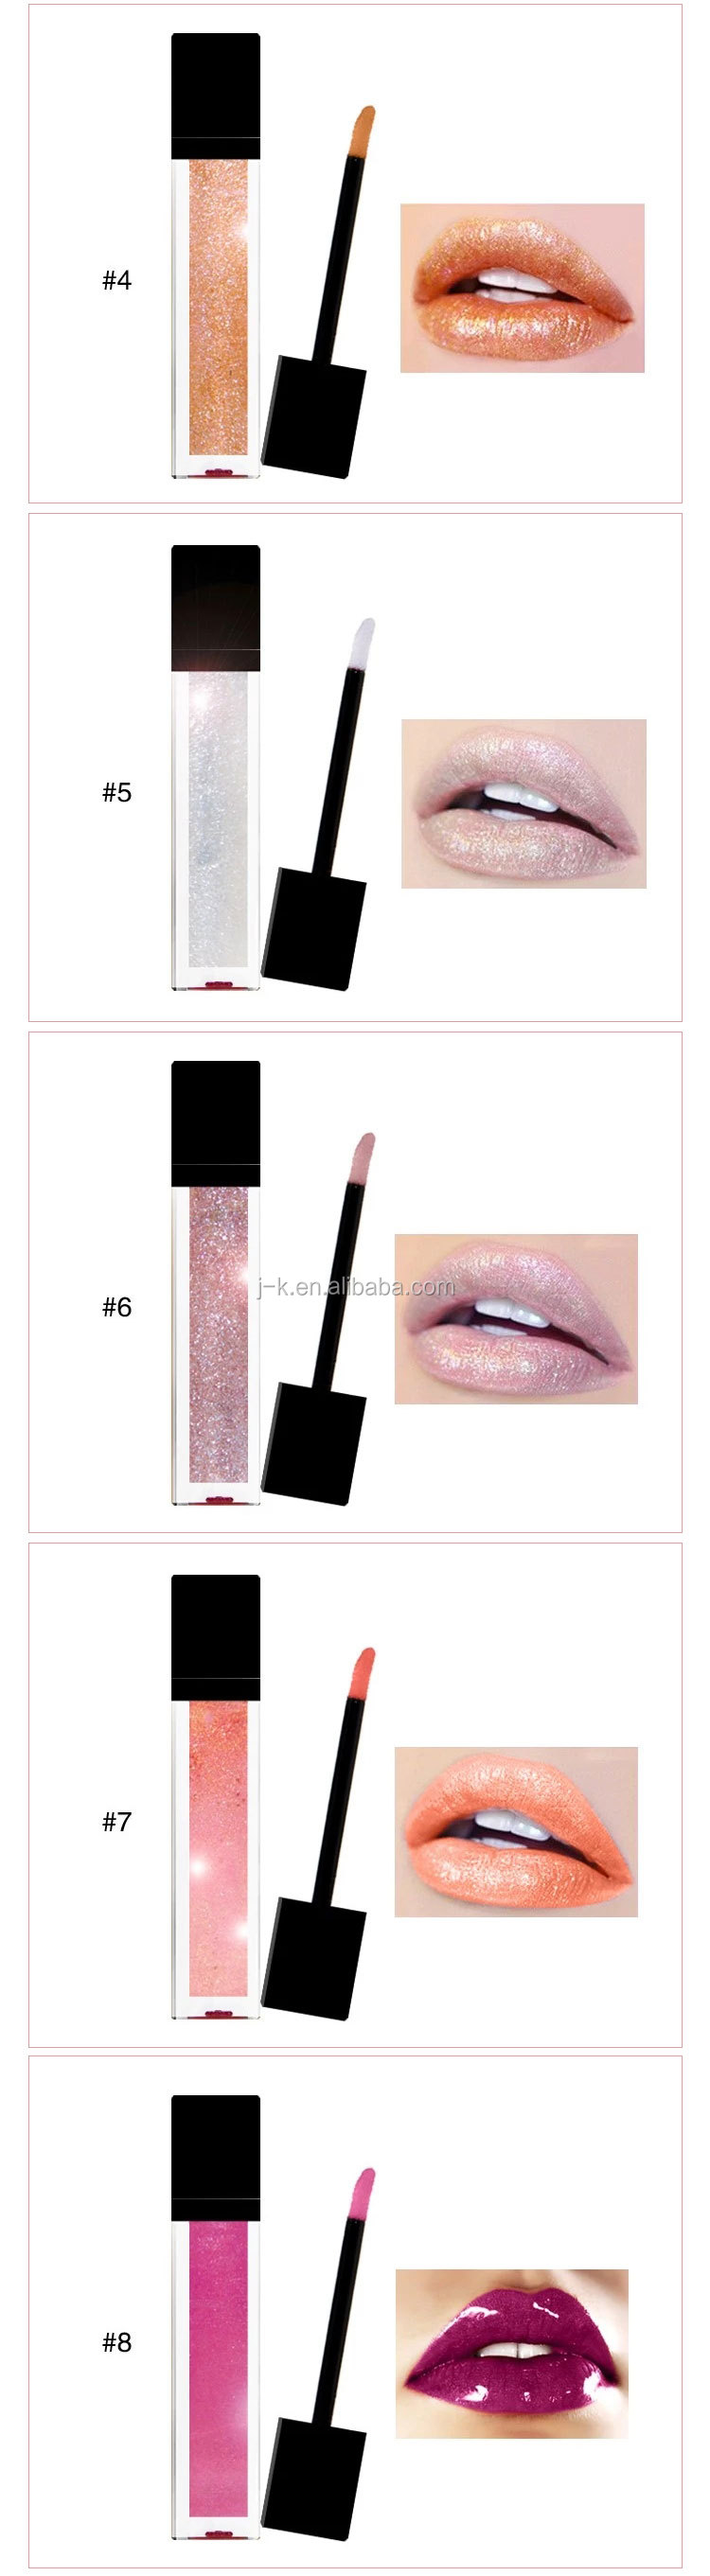 Wholesale Private Label 11 Colors Glitter Cosmetics Lipgloss Makeup Lip Gloss Tube No Labels With Gift Box